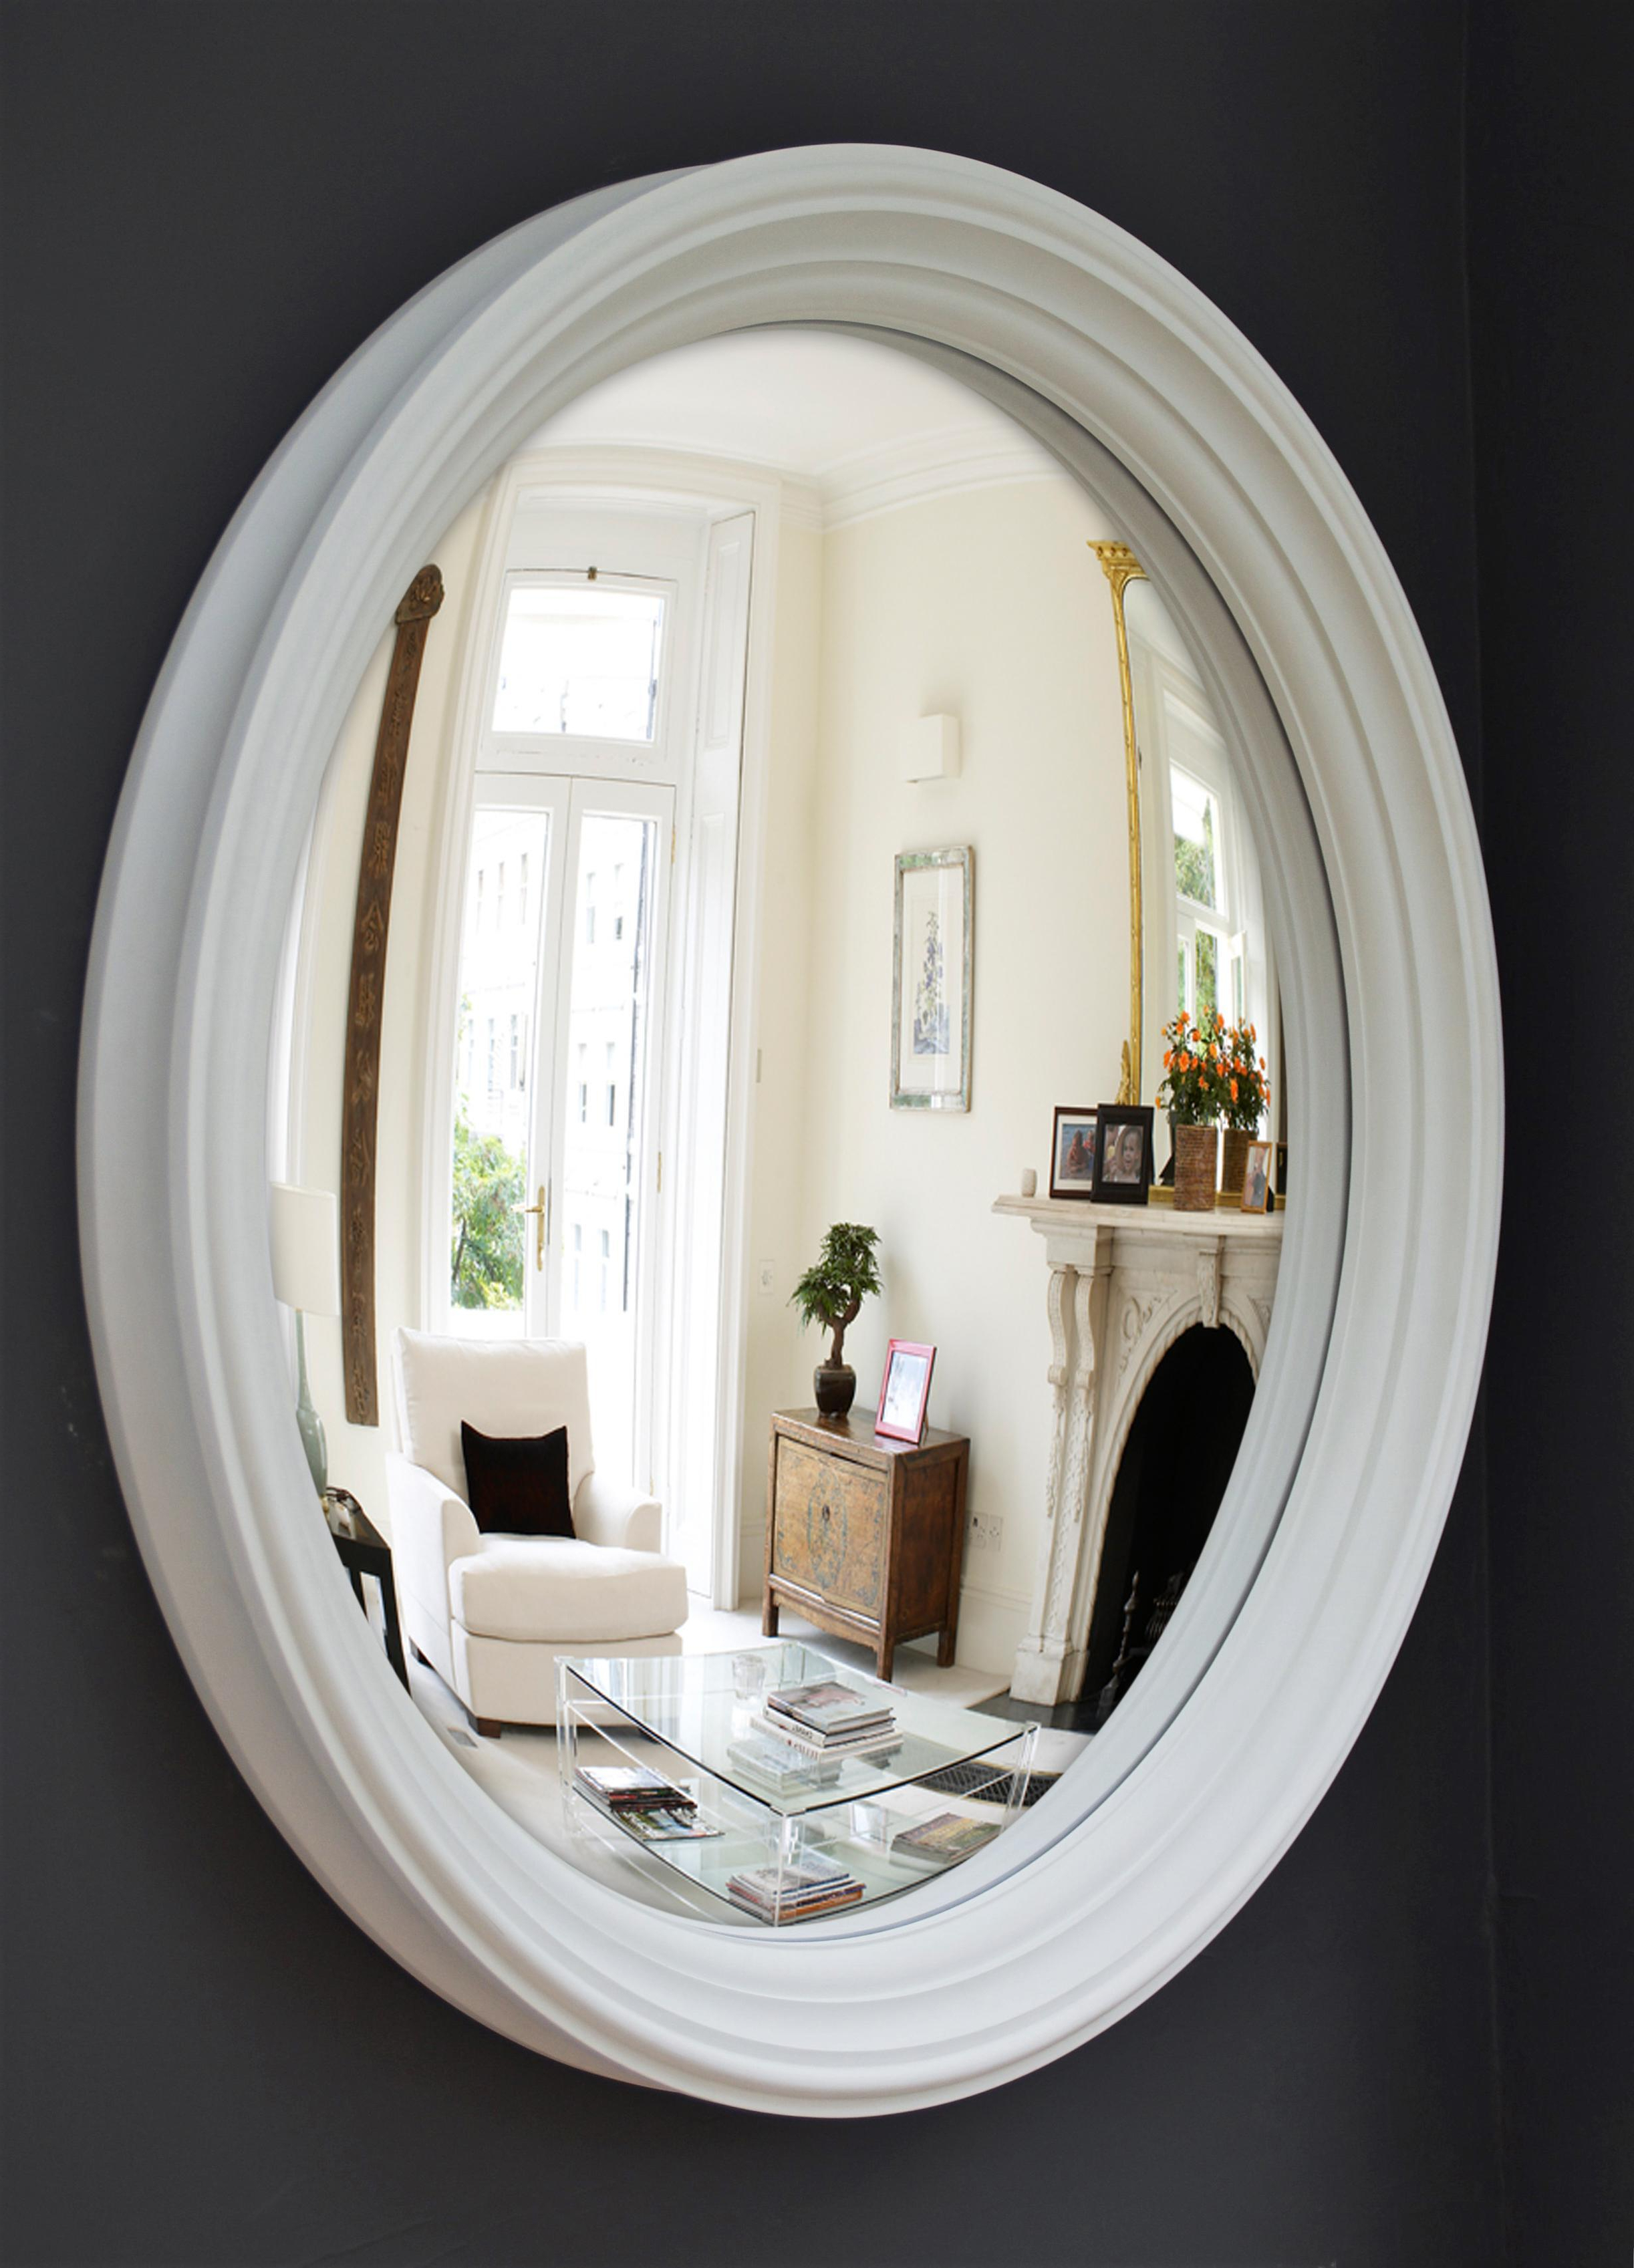 Preferred Large Lucca Convex Mirror (105cm)omelo Mirrors In Wall Mirrors Pertaining To Convex Wall Mirrors (View 19 of 20)